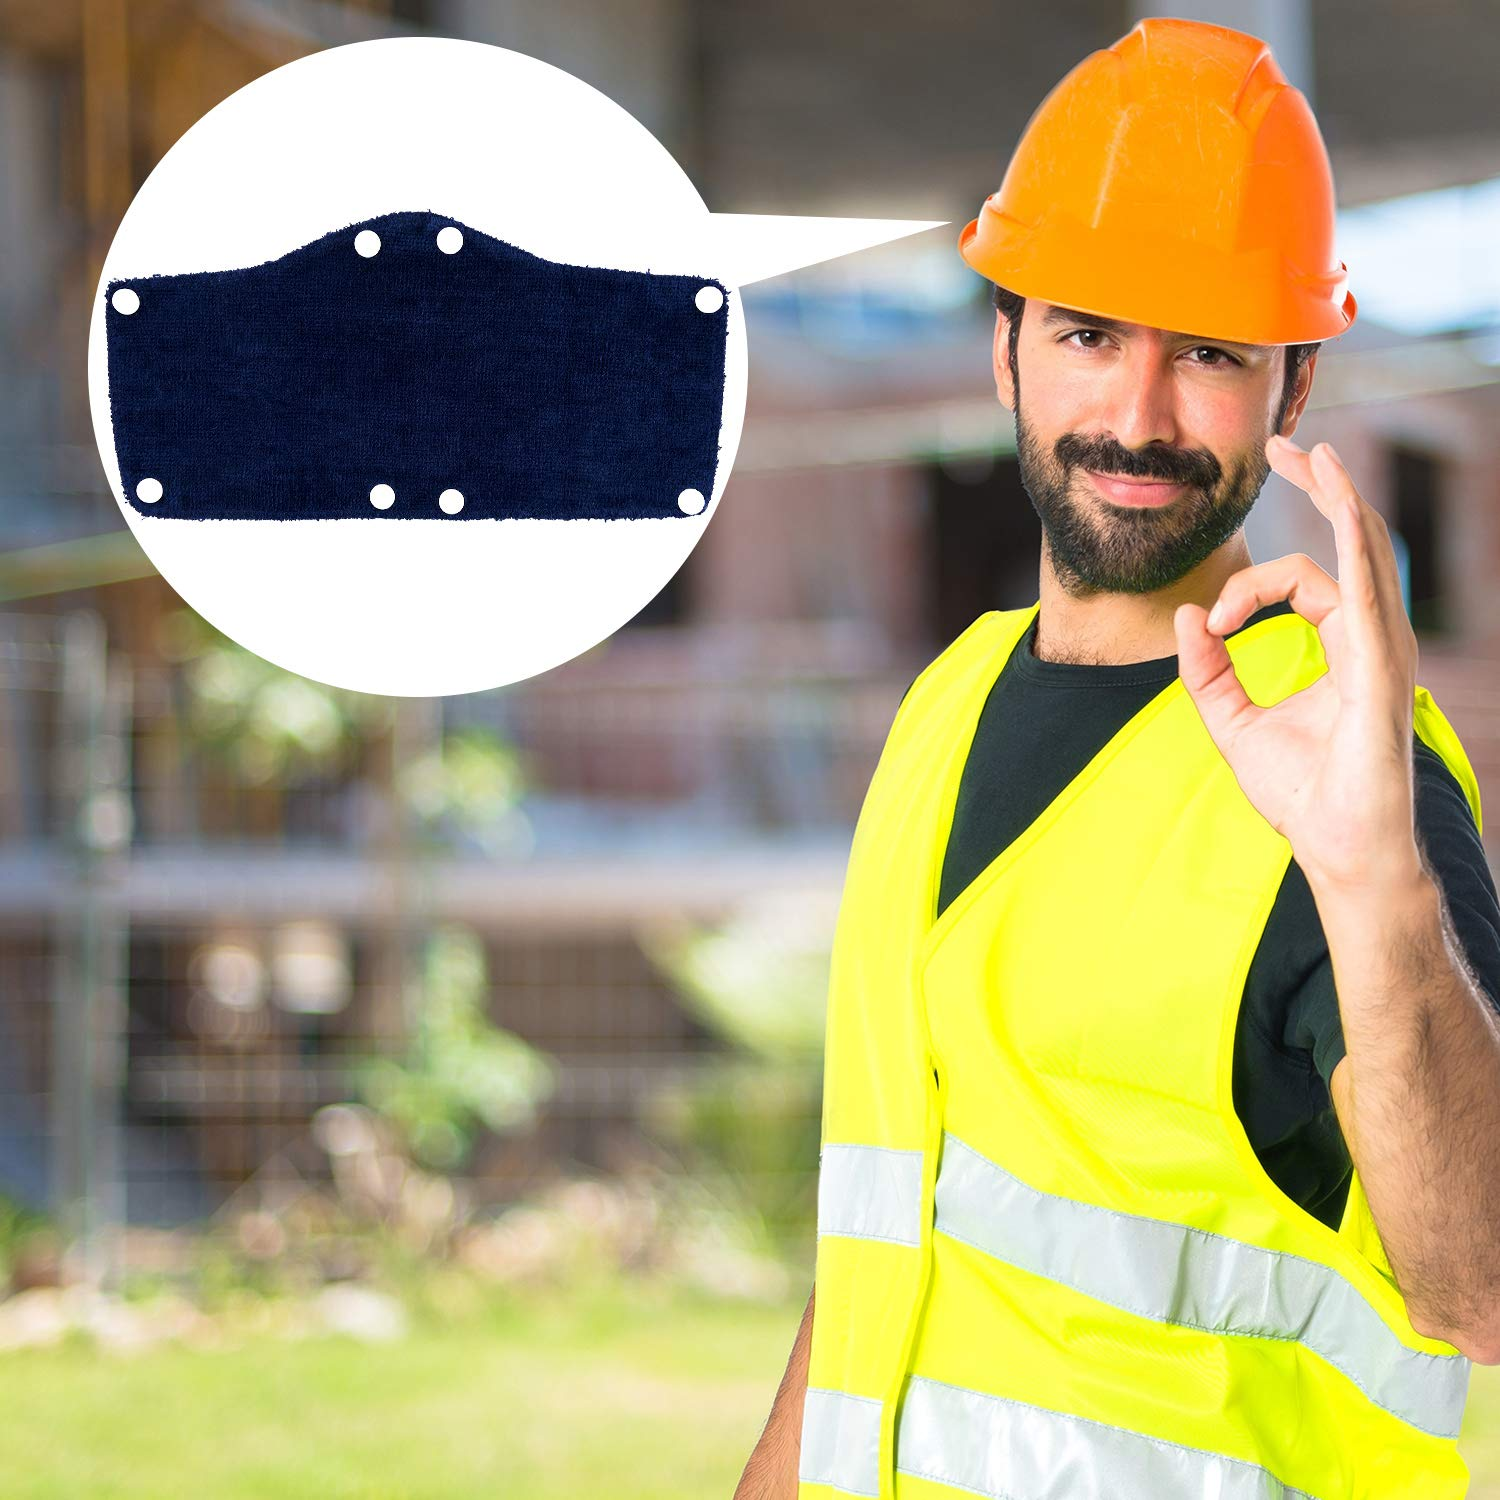 8 Pieces Cotton Hard Hat Sweatband Snap-on Sweatband Terry Cloth Hard Hat Liner for Safety Accessories Blue